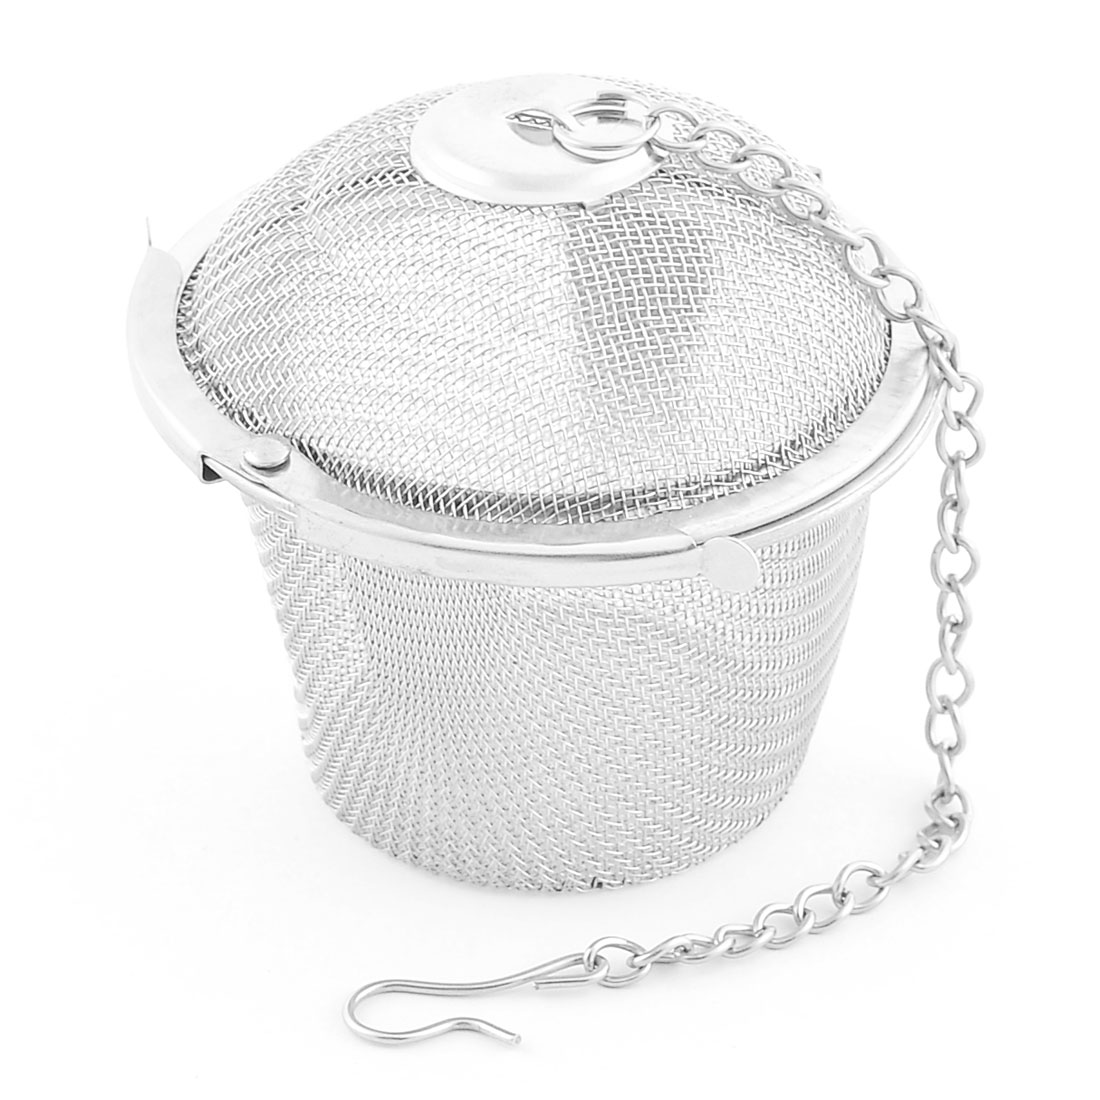 Stainless Steel Round Mesh Locked Infuser Filter Tea Stainer 54mm Diameter